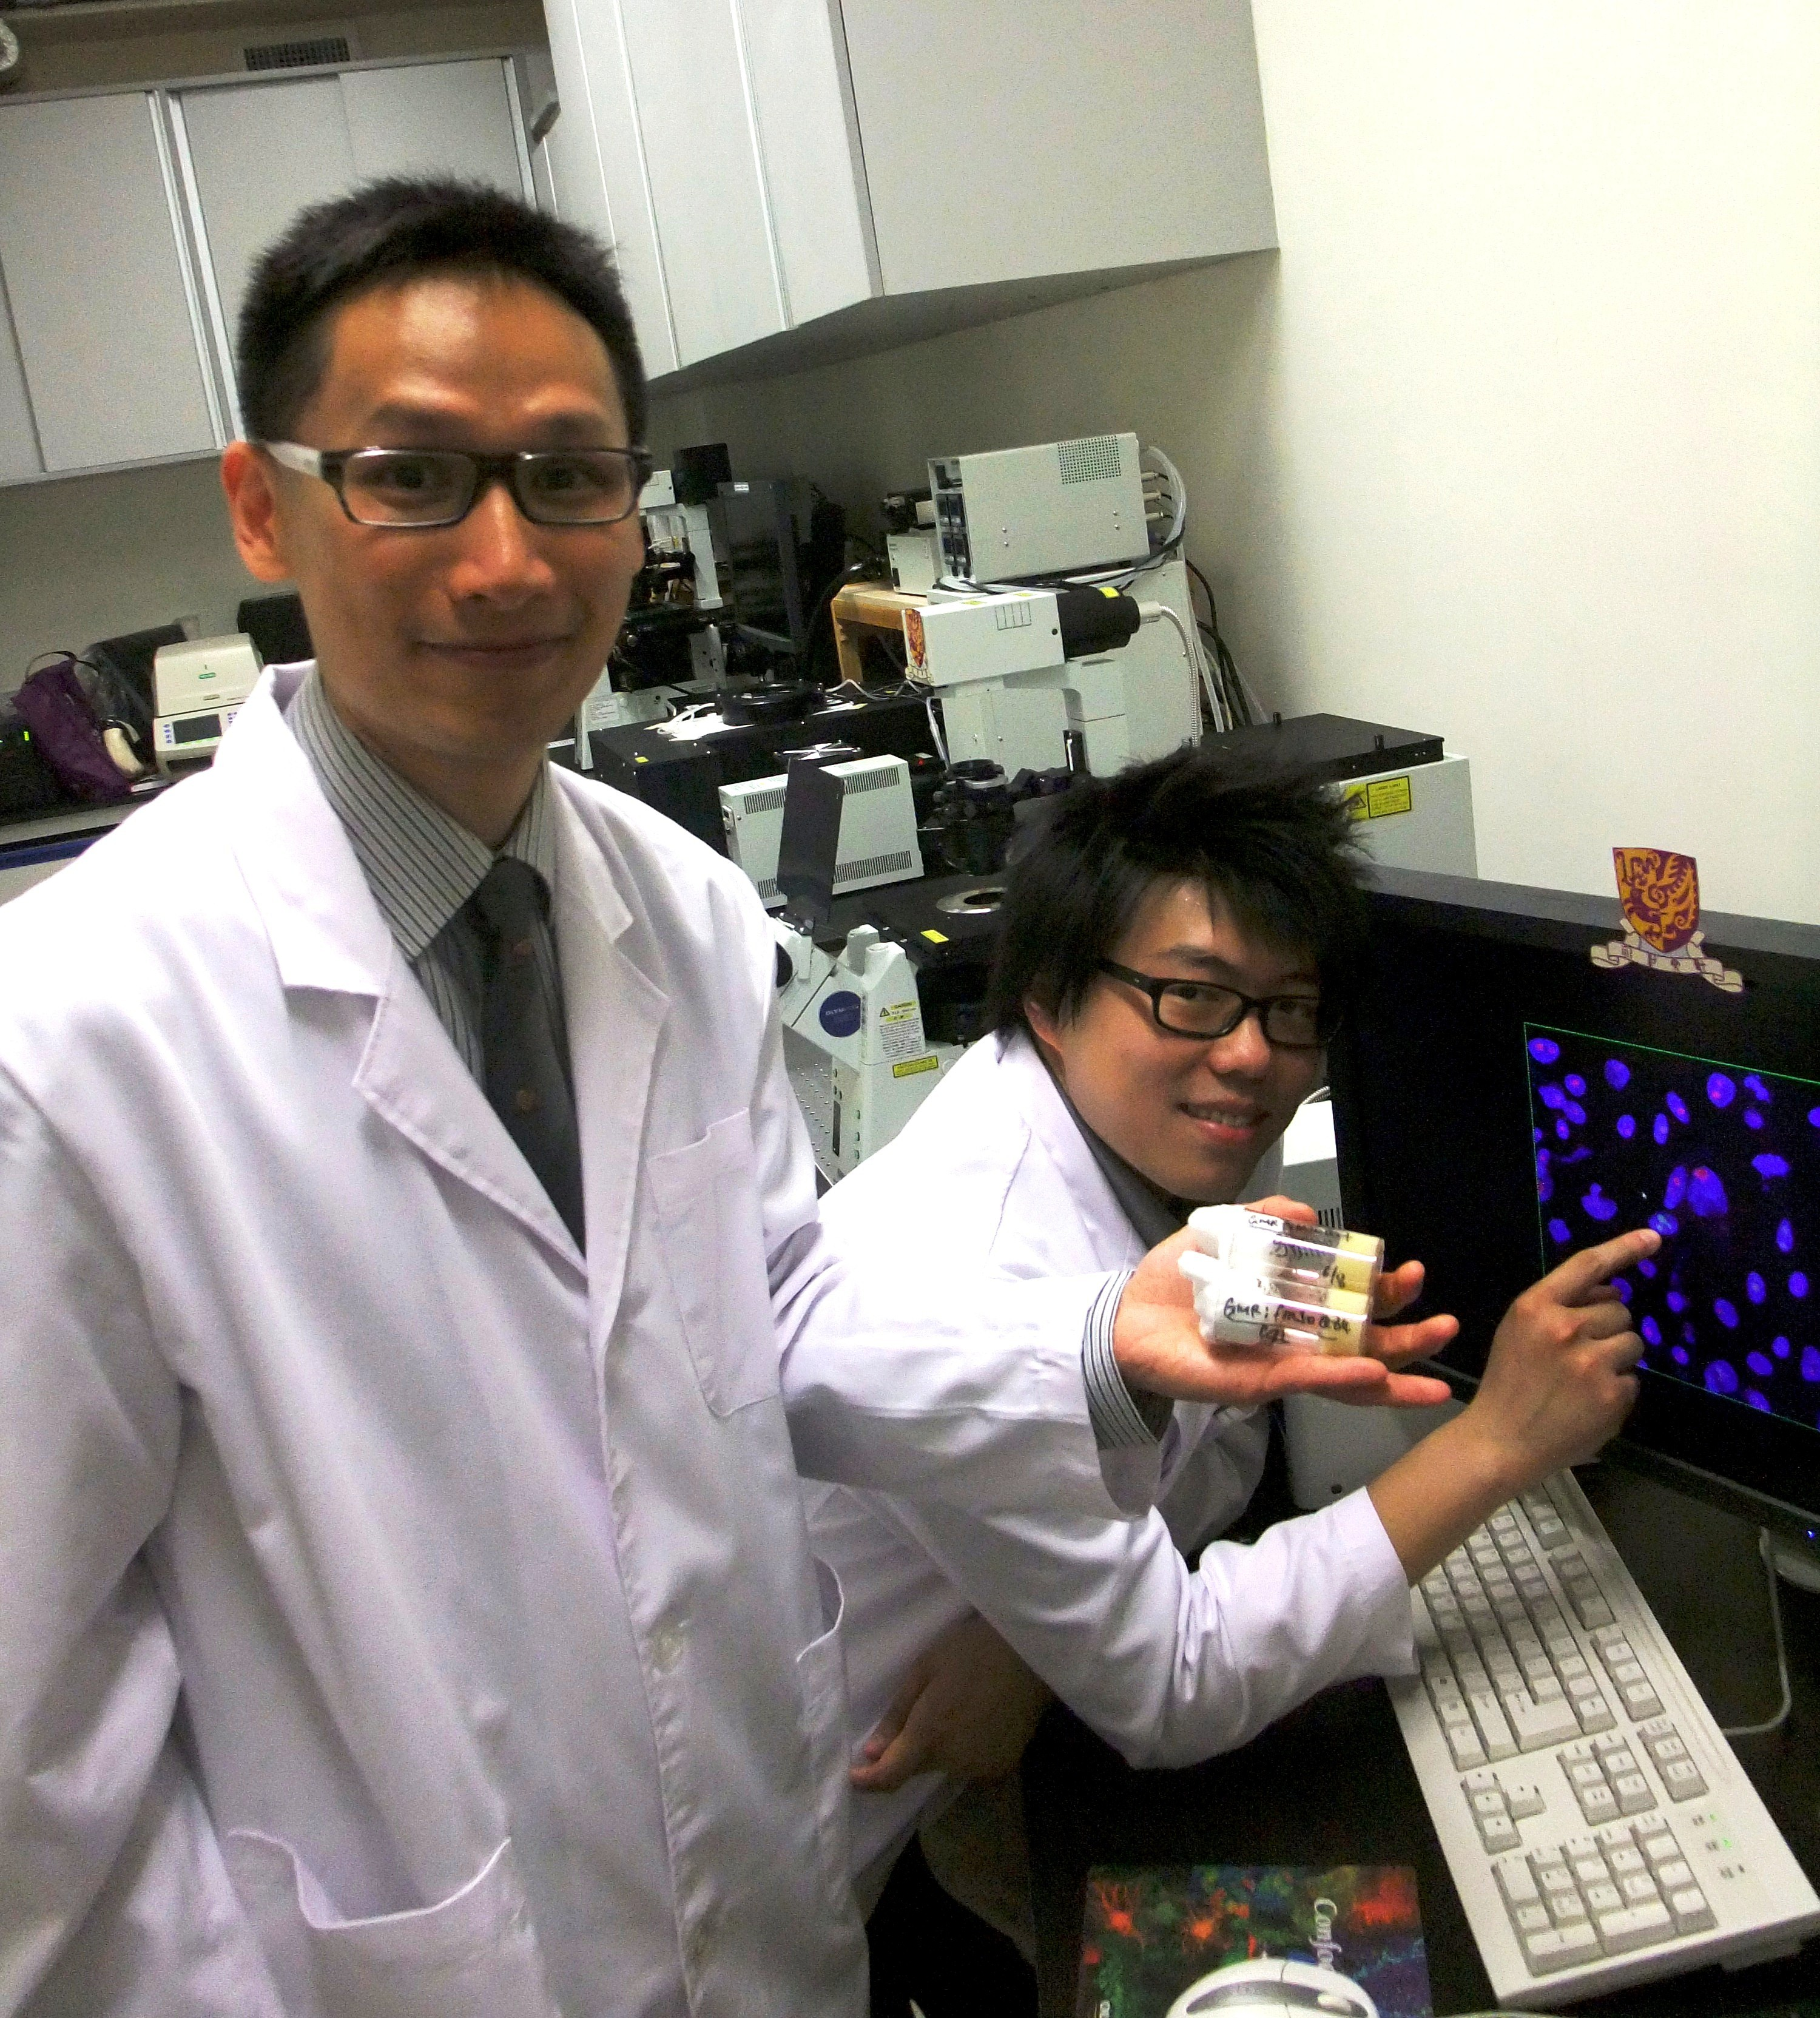 Prof. Edwin H.Y. Chan (left) of the School of Life Sciences and his PhD student, Mr. Frankie H. Tsoi, illuminate pathogenic pathways of Spinocerebellar Ataxias.